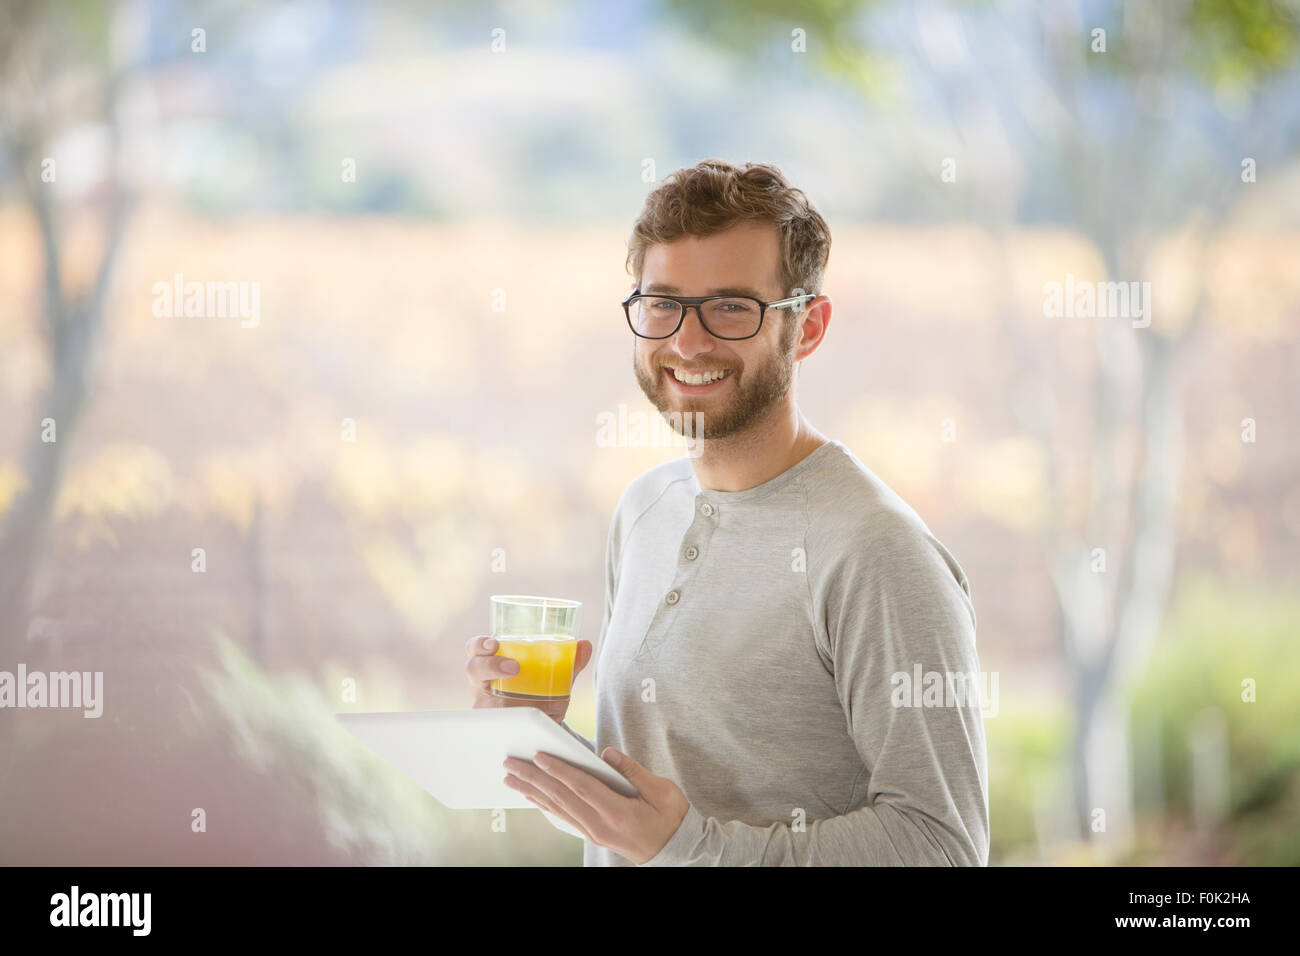 Portrait smiling man drinking orange juice and using digital tablet on patio - Stock Image